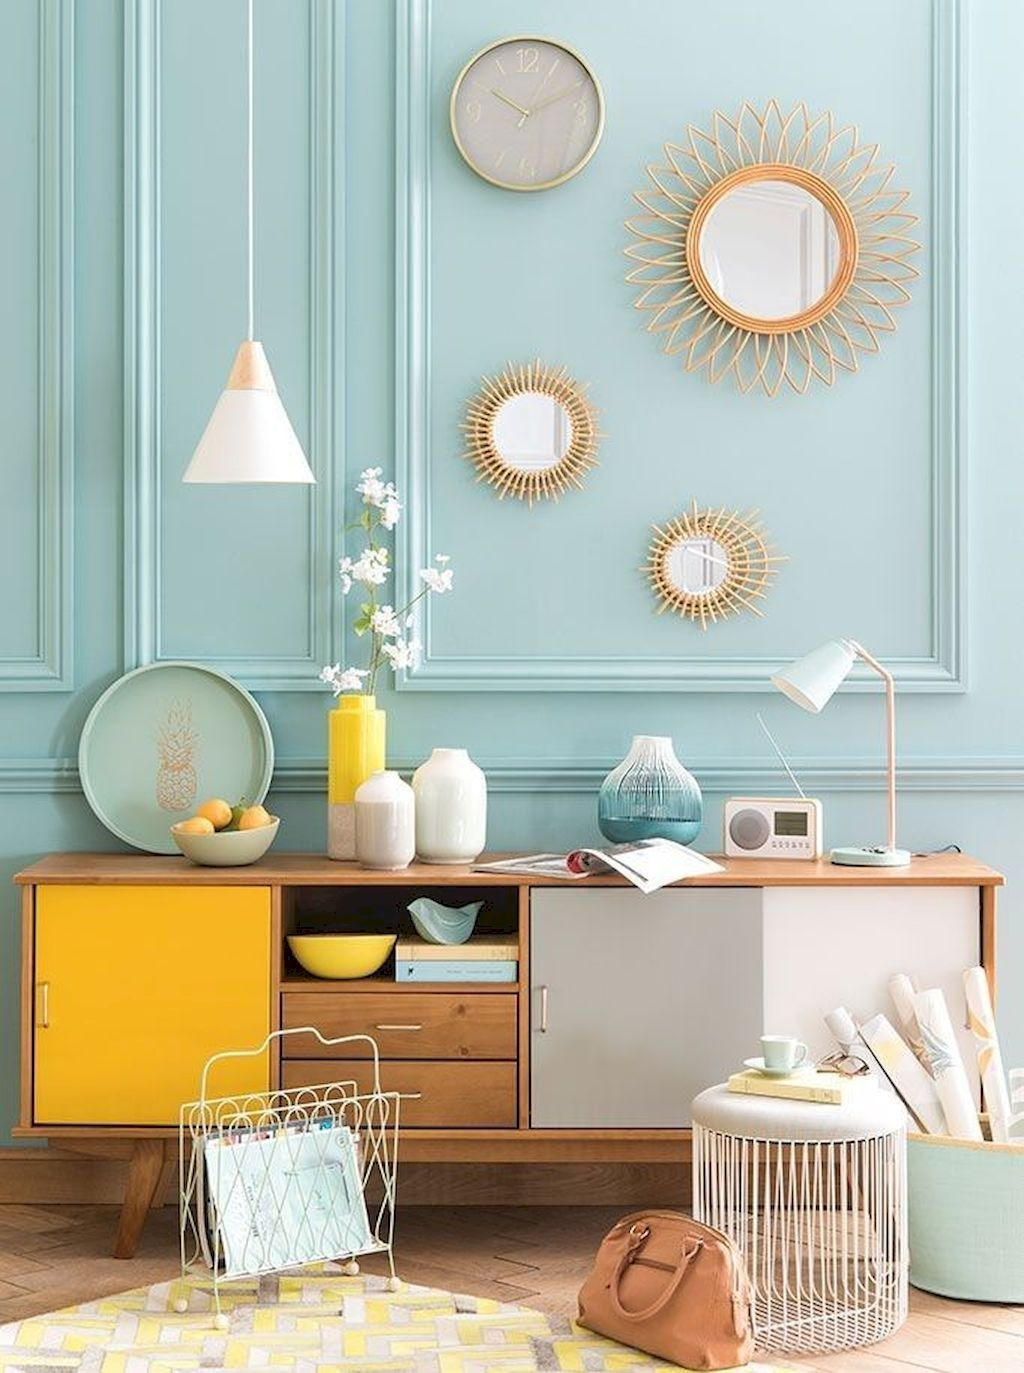 Amazing Interior Ideas in Blue and Yellow Decorations Part